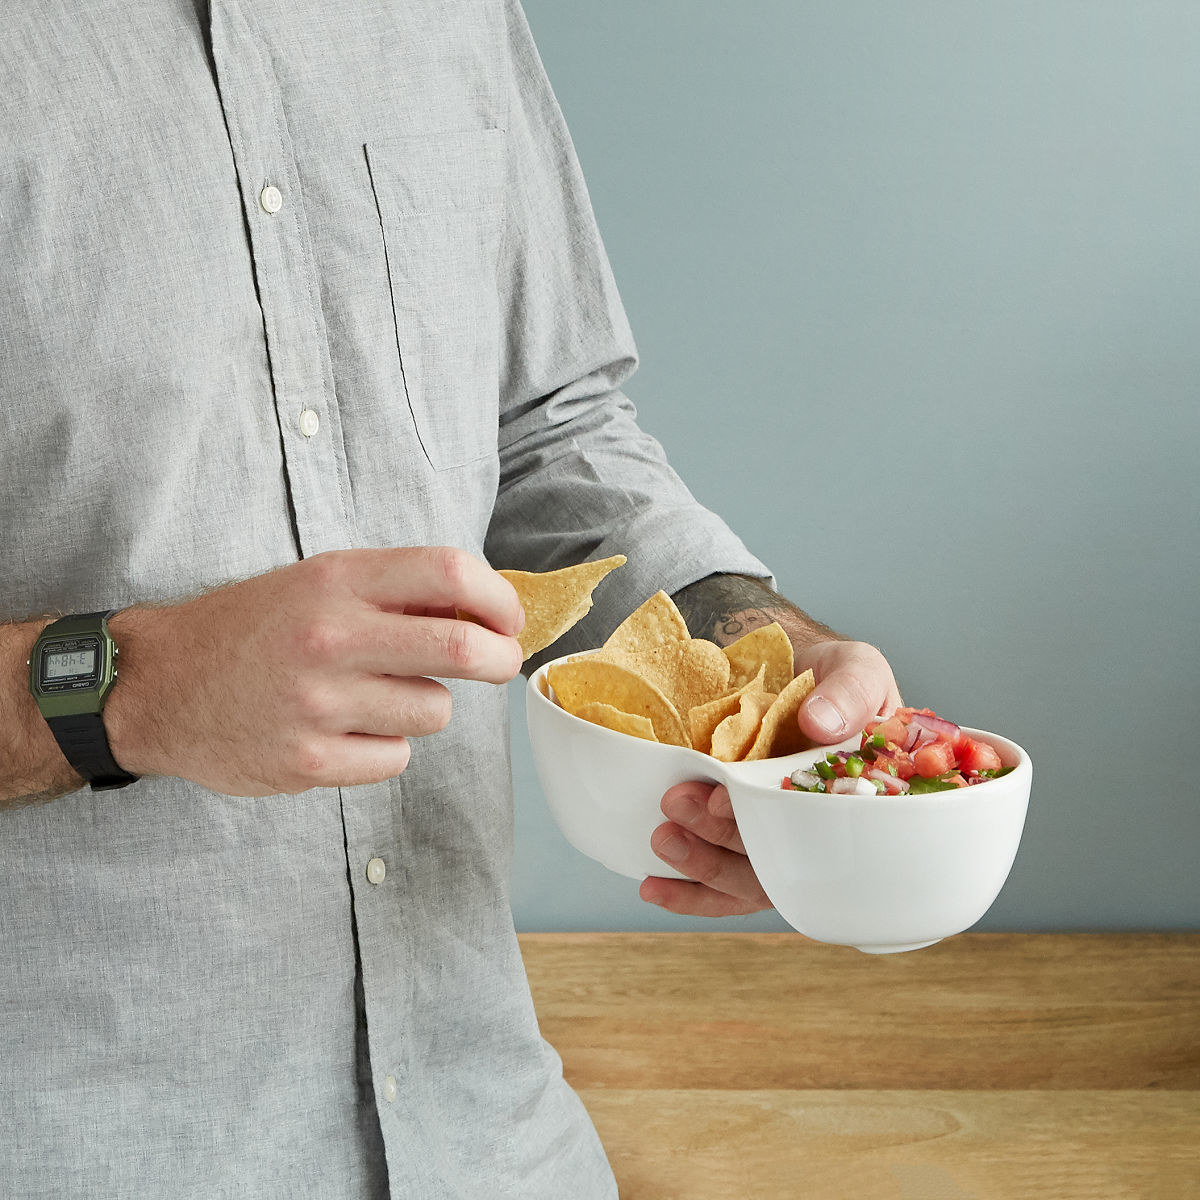 A person using the bowl for chips and salsa